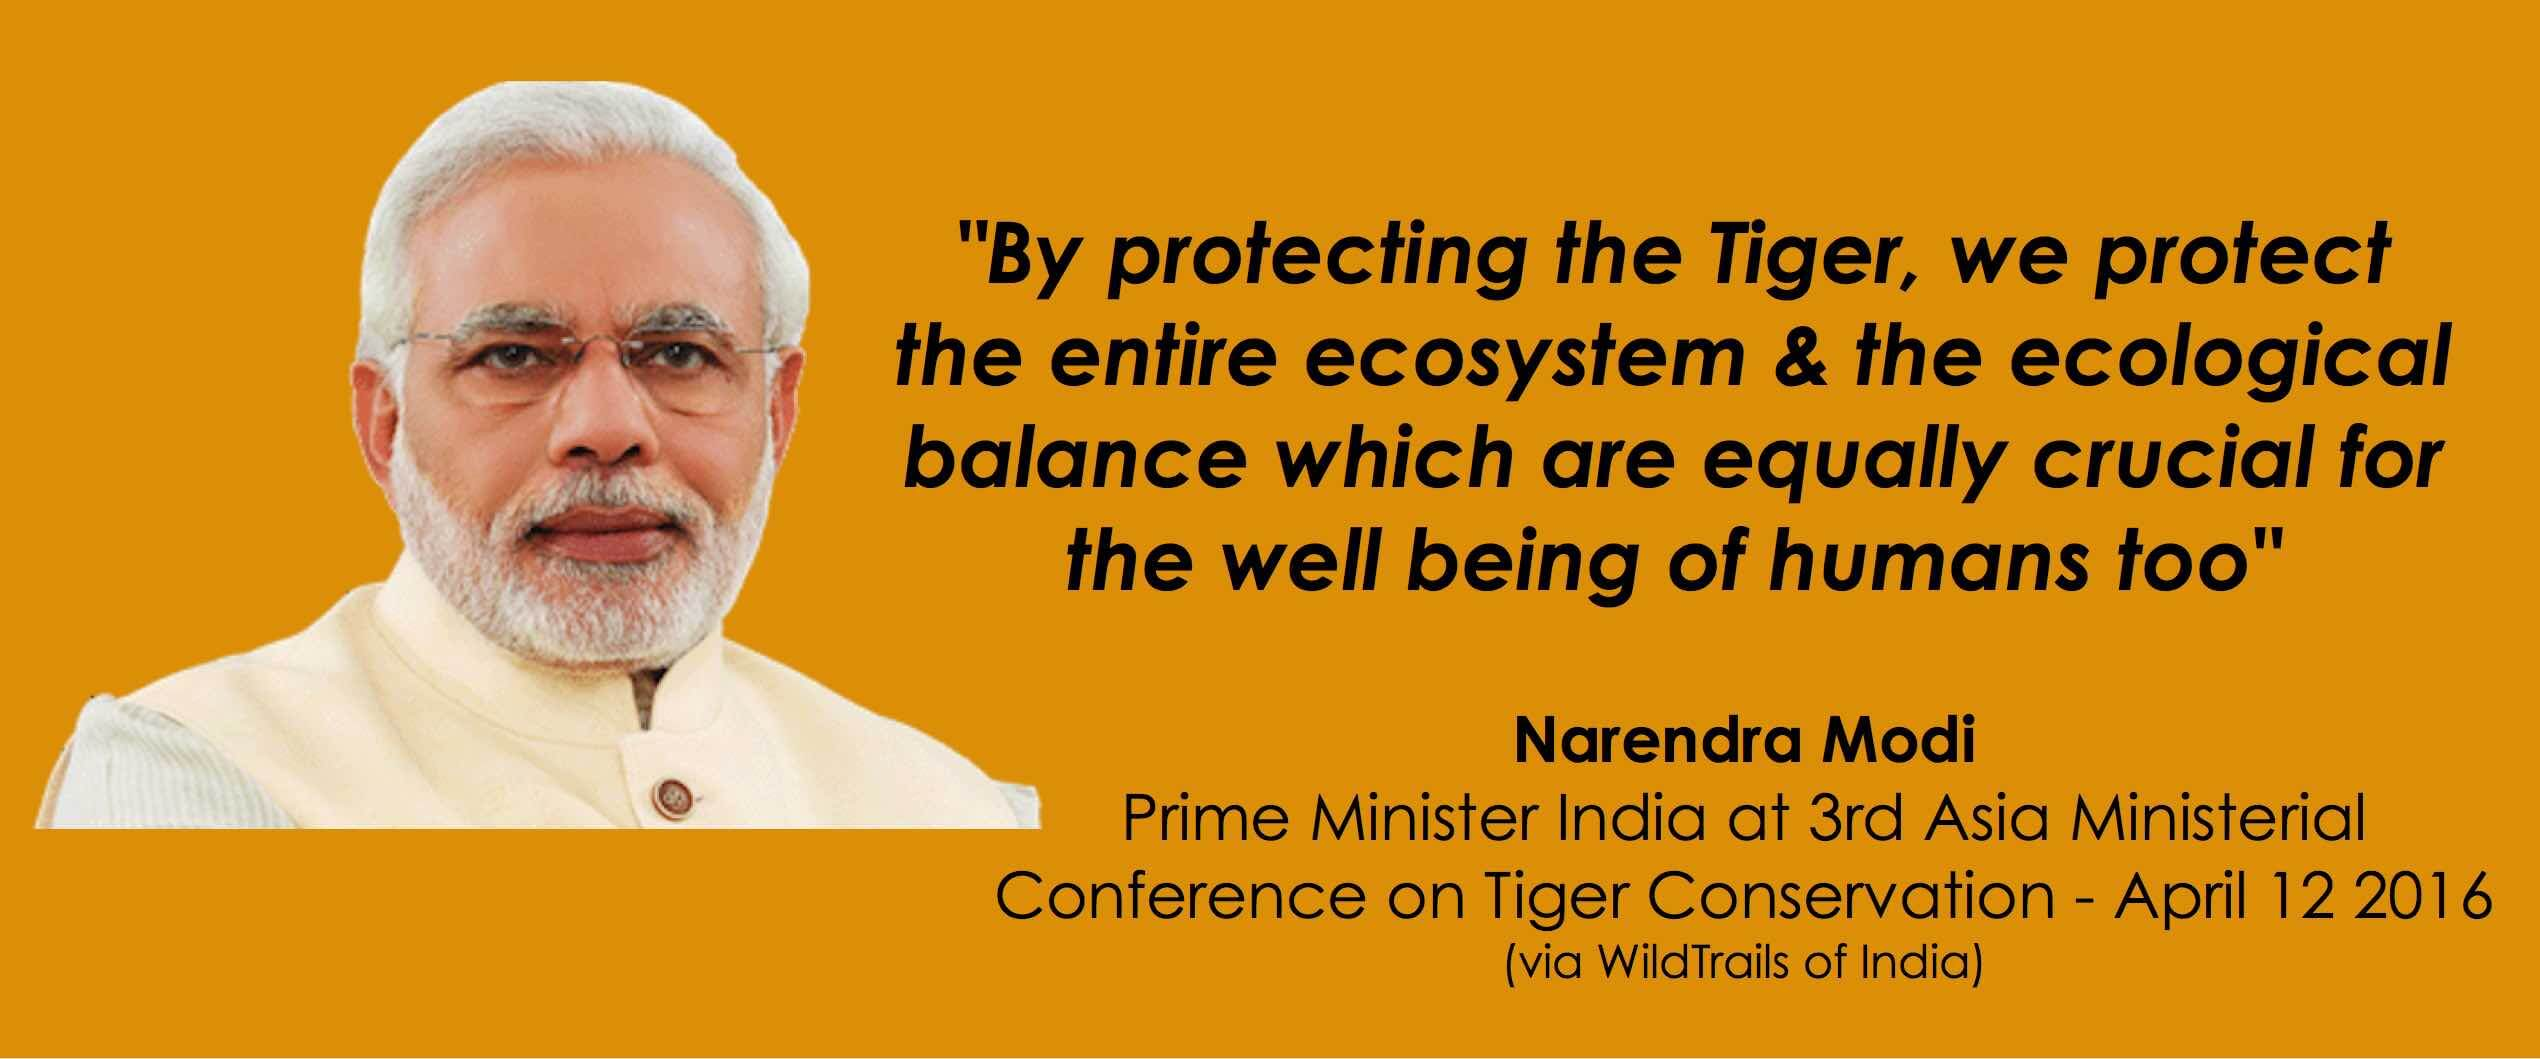 Narendra Modi on Tiger Conservation